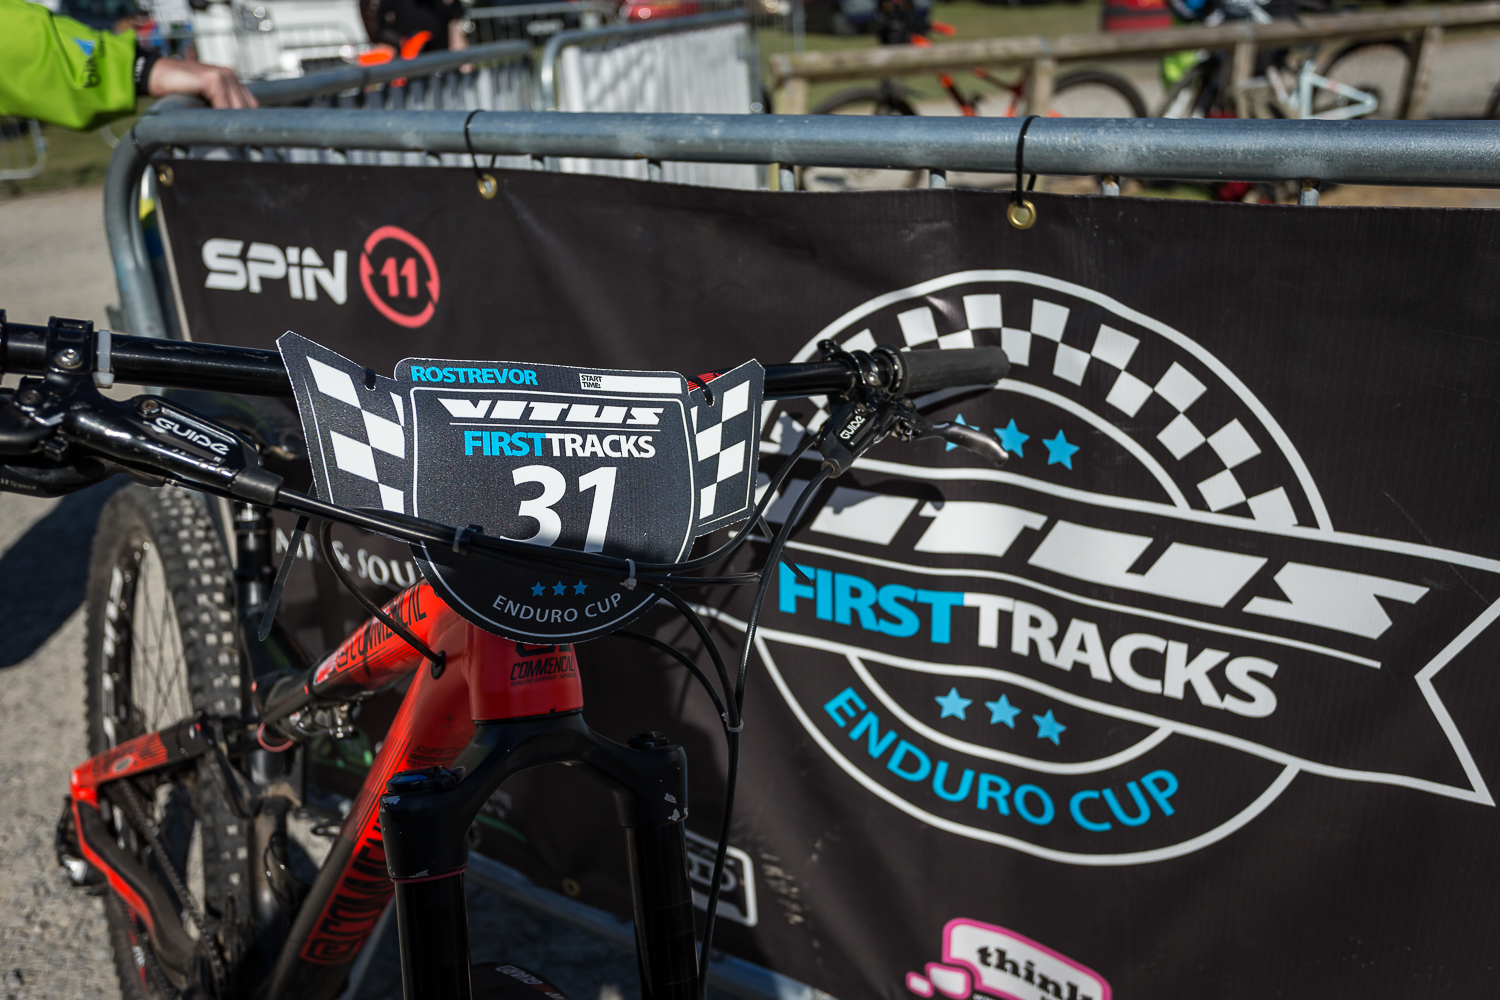 Vitus First Tracks Rd3 Sunday